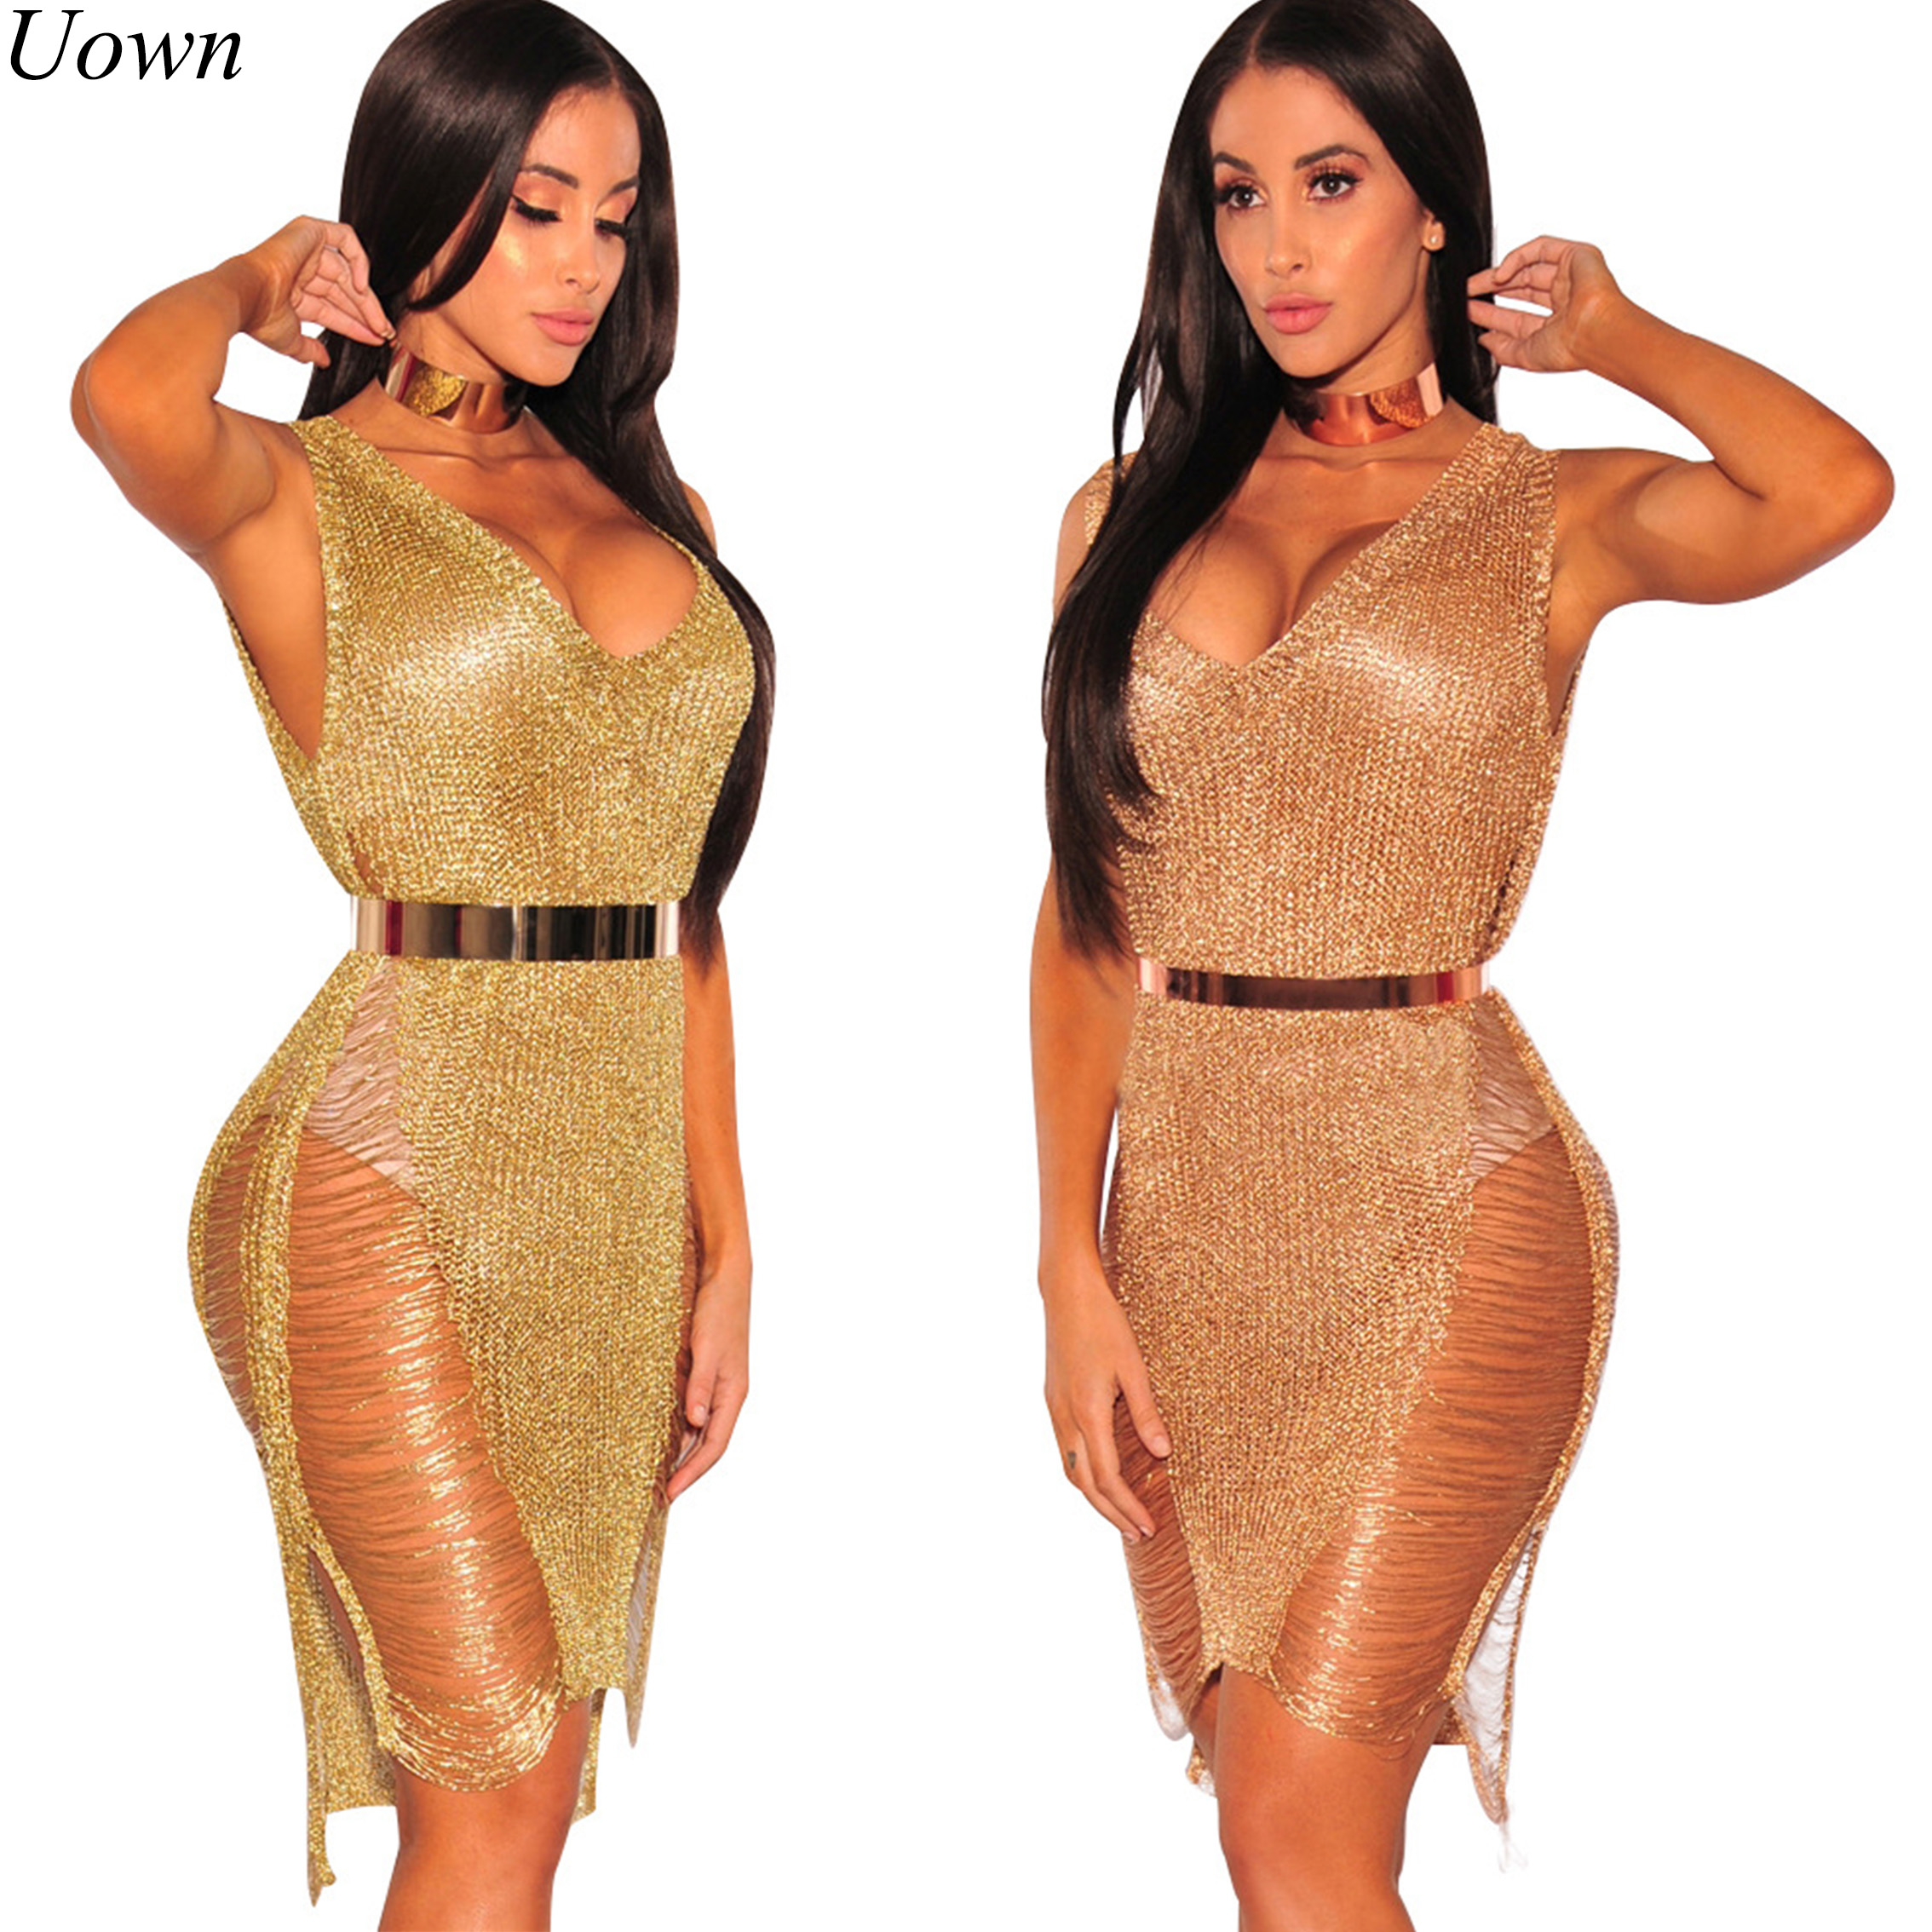 Ladies Summer Beach Dress Women Elegant Crochet Sexy Backless Hollow Out Club Party Night Emas Sequin Dress Vestido tanpa Belt